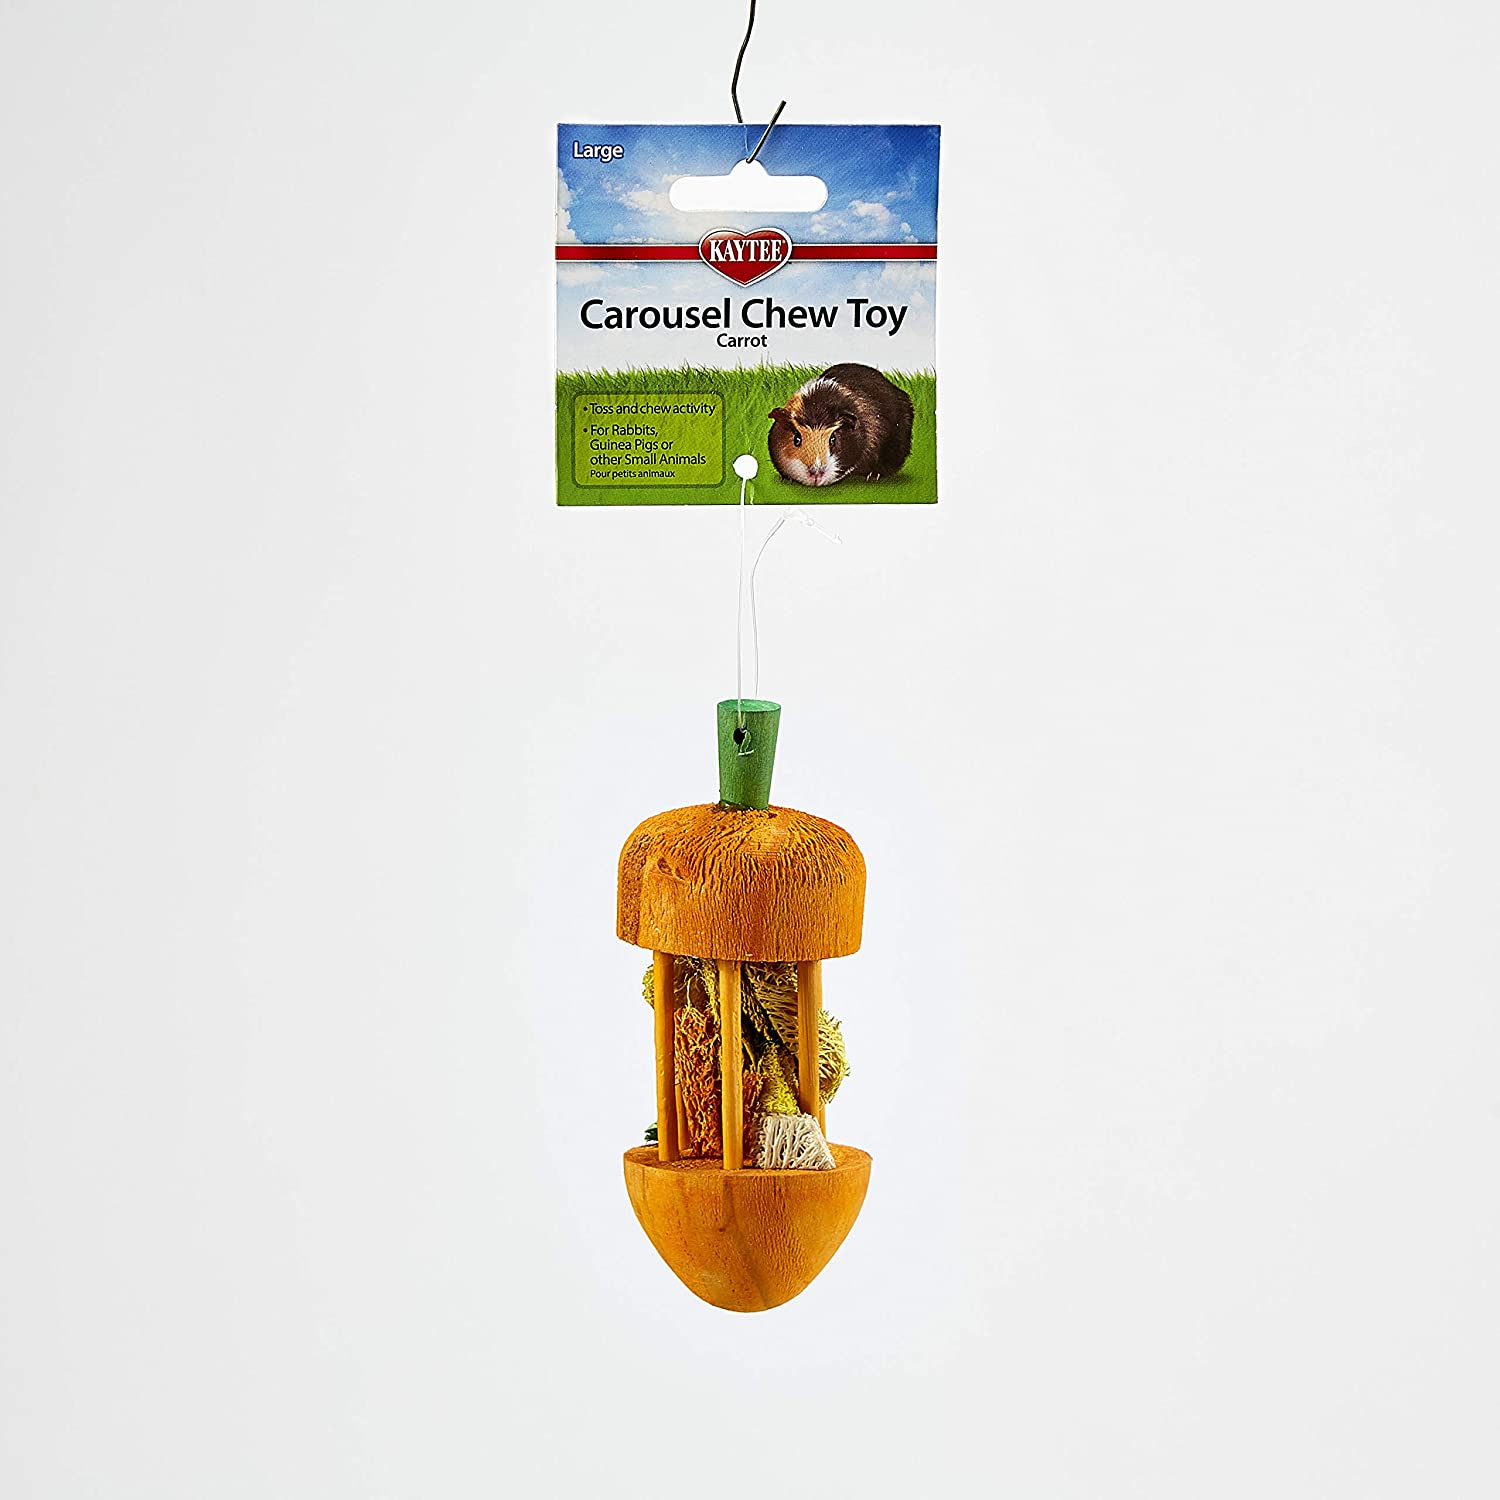 Kaytee Carousel Chew Toy Carrot, Large